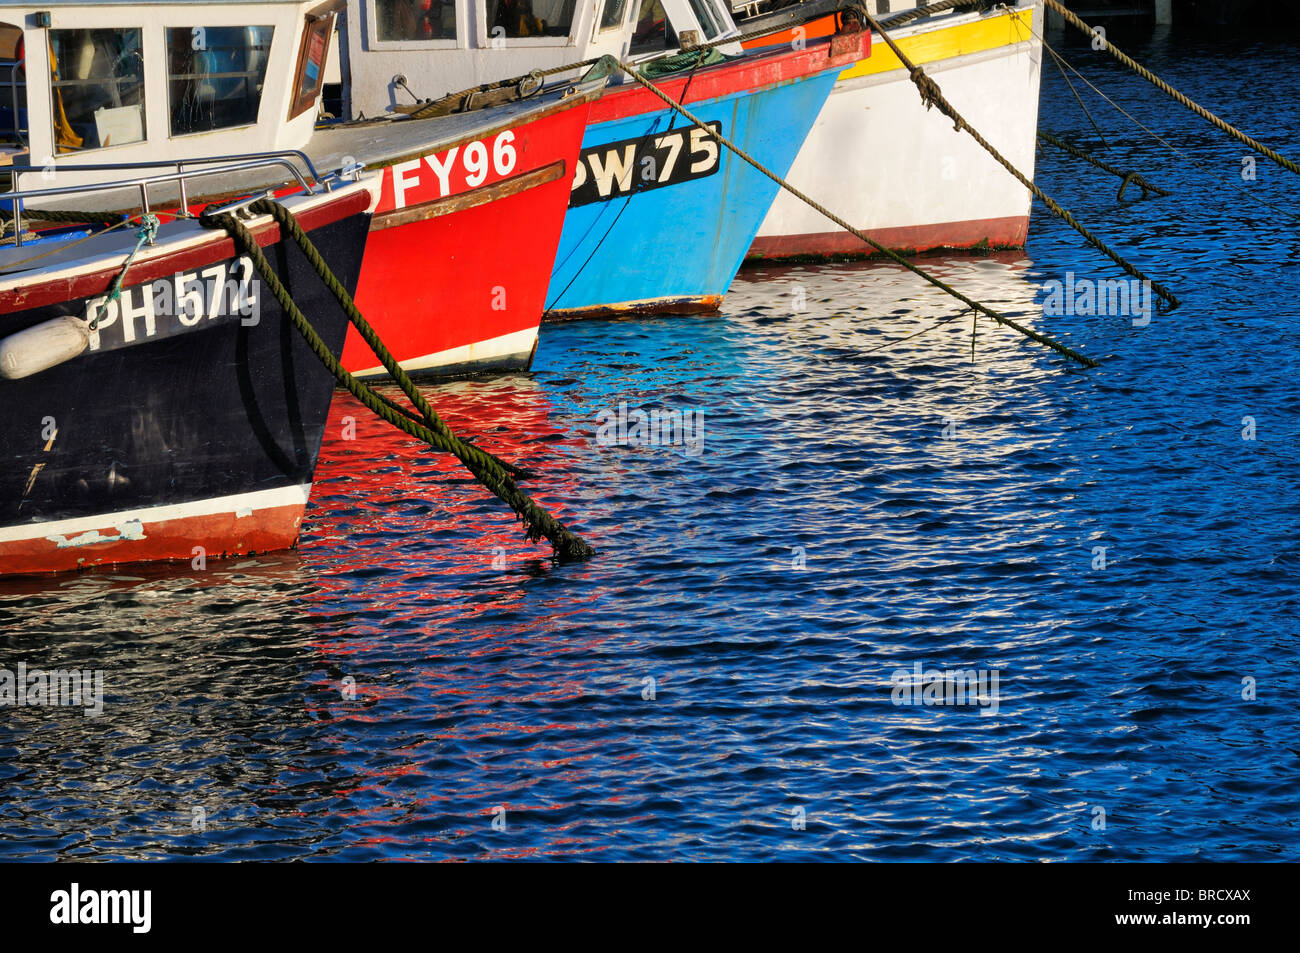 Colourful fishing boats in harbour - Stock Image